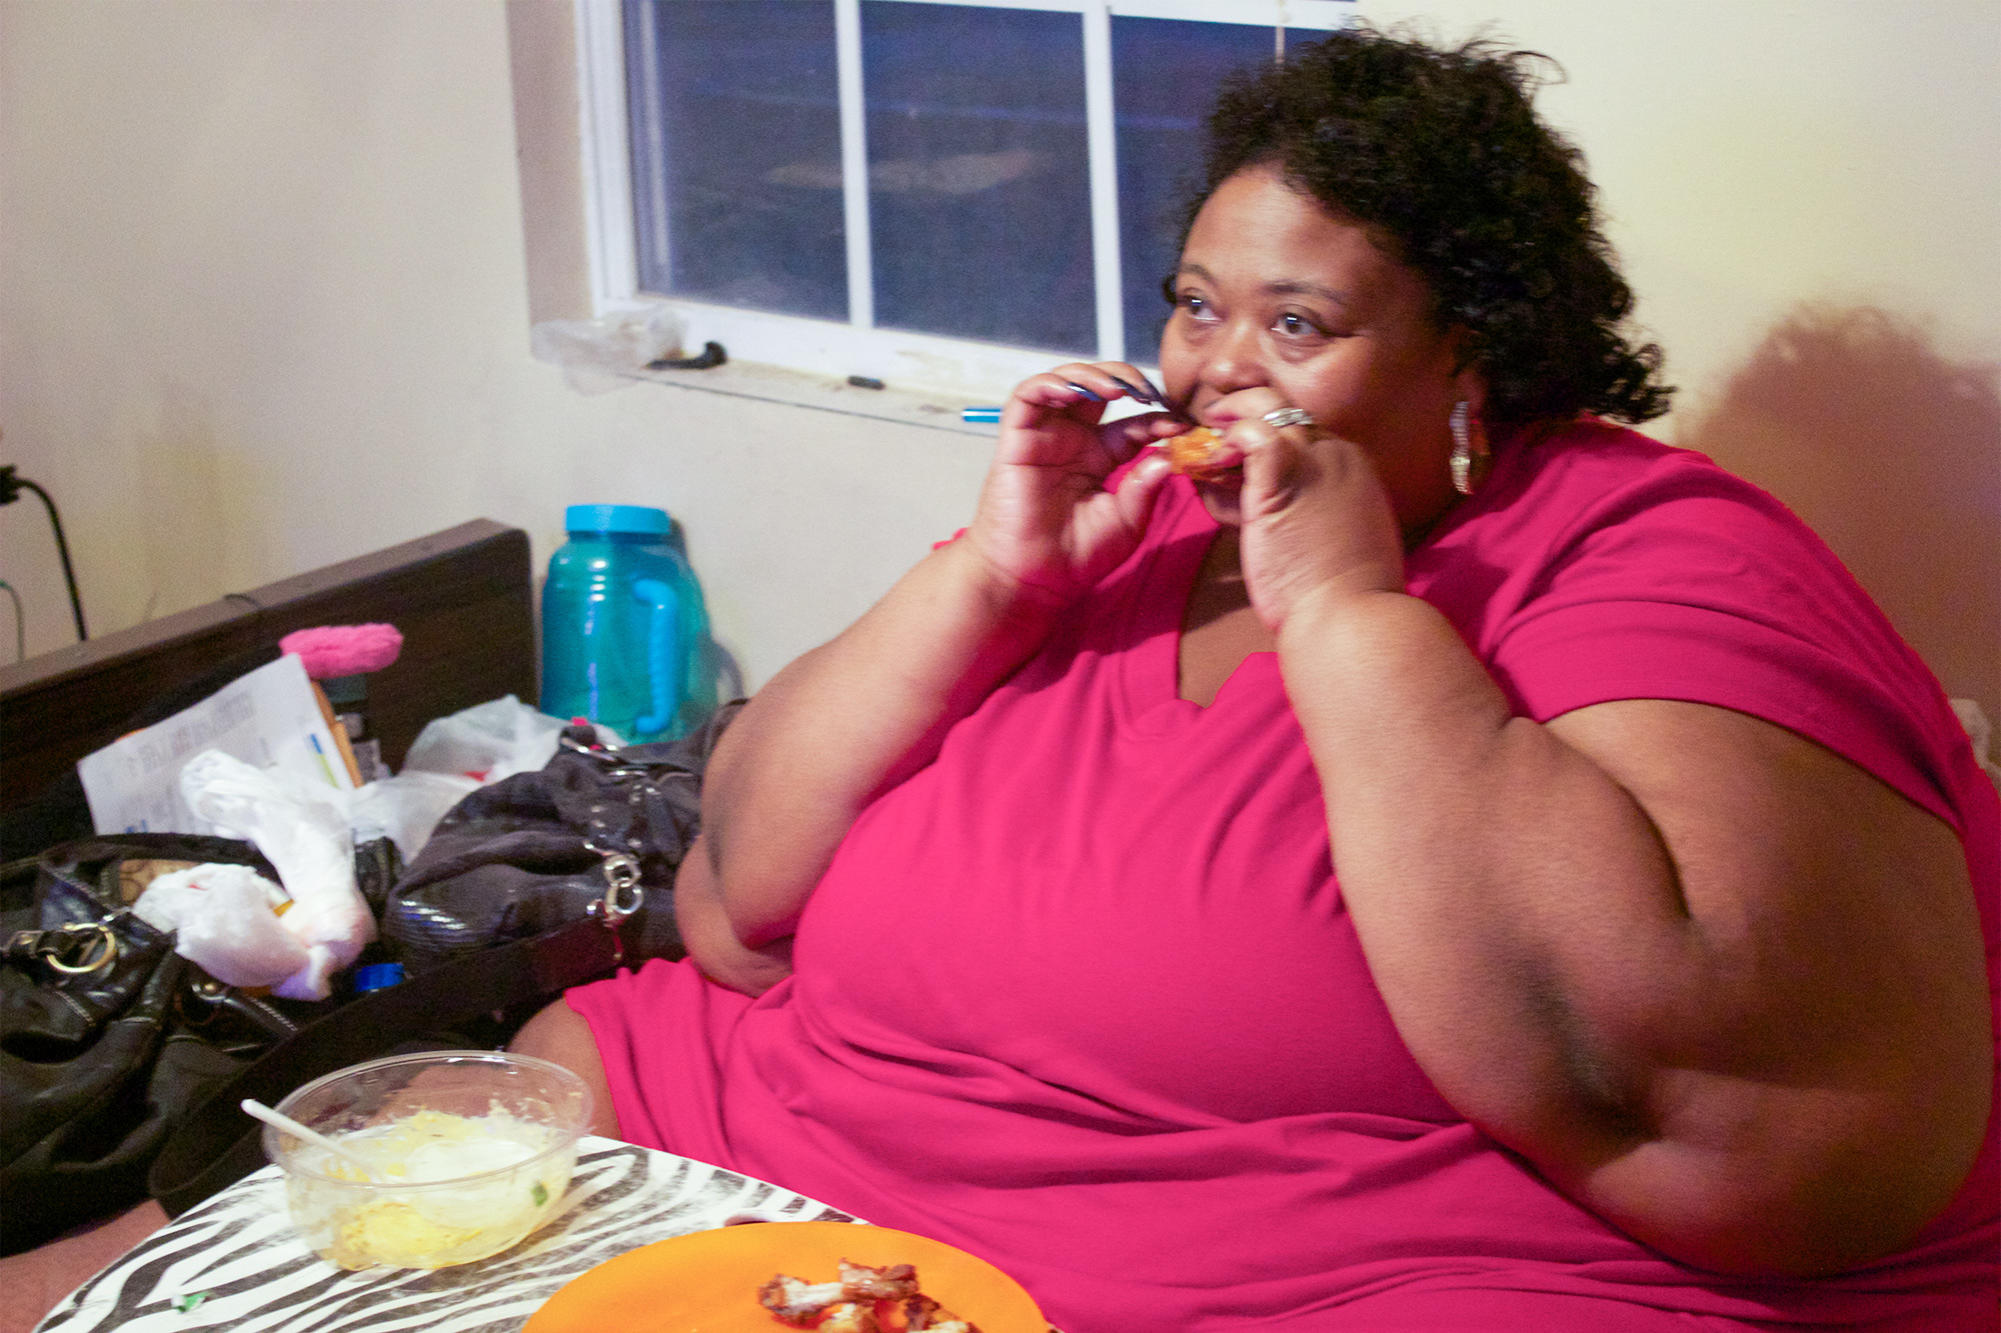 Lauras Journey in Photos   My 600-lb Life   TLC